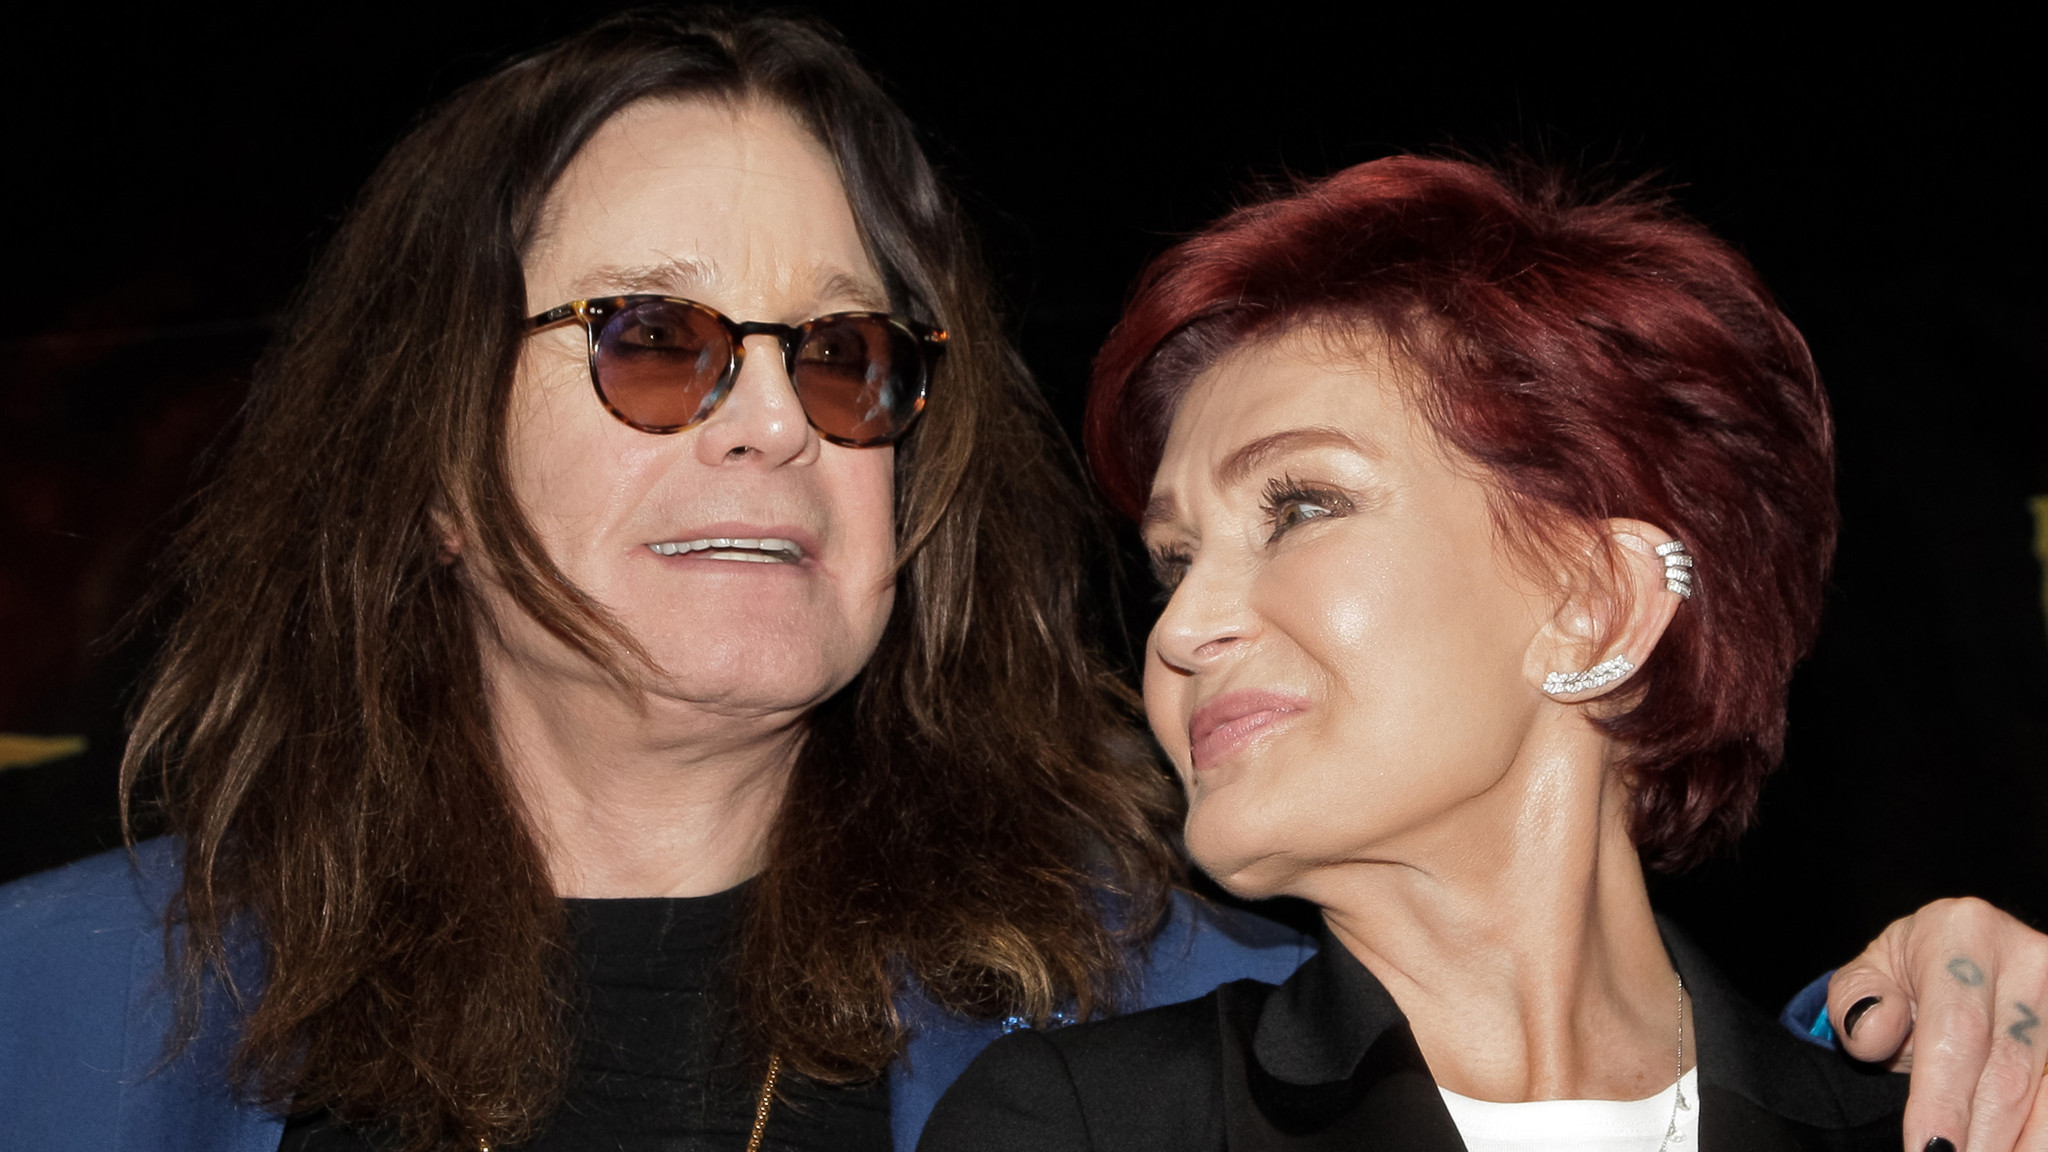 Ozzy Osbourne says he's a sex addict; former mistress begs to differ - LA Times